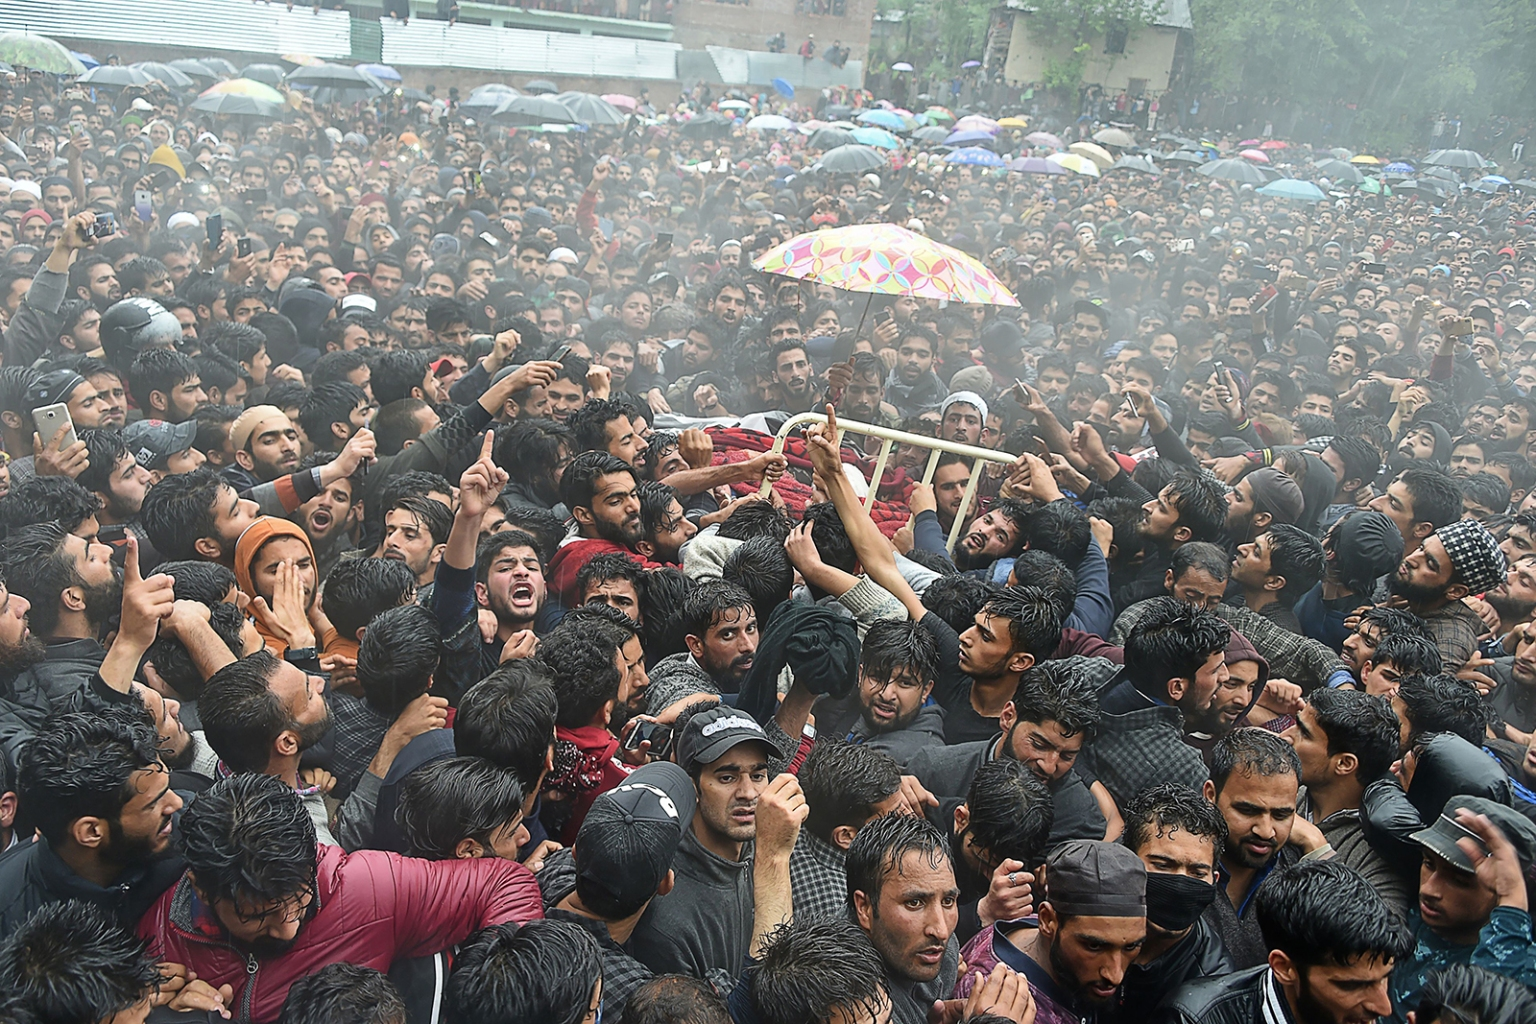 Kashmiri villagers carry the body of top militant commander Zakir Musa of the Ansar Ghazwat-ul-Hind group, which claims affiliation with al Qaeda, during a funeral procession at Dadsar village in Tral, south of Srinagar, on May 24. TAUSEEF MUSTAFA/AFP/Getty Images